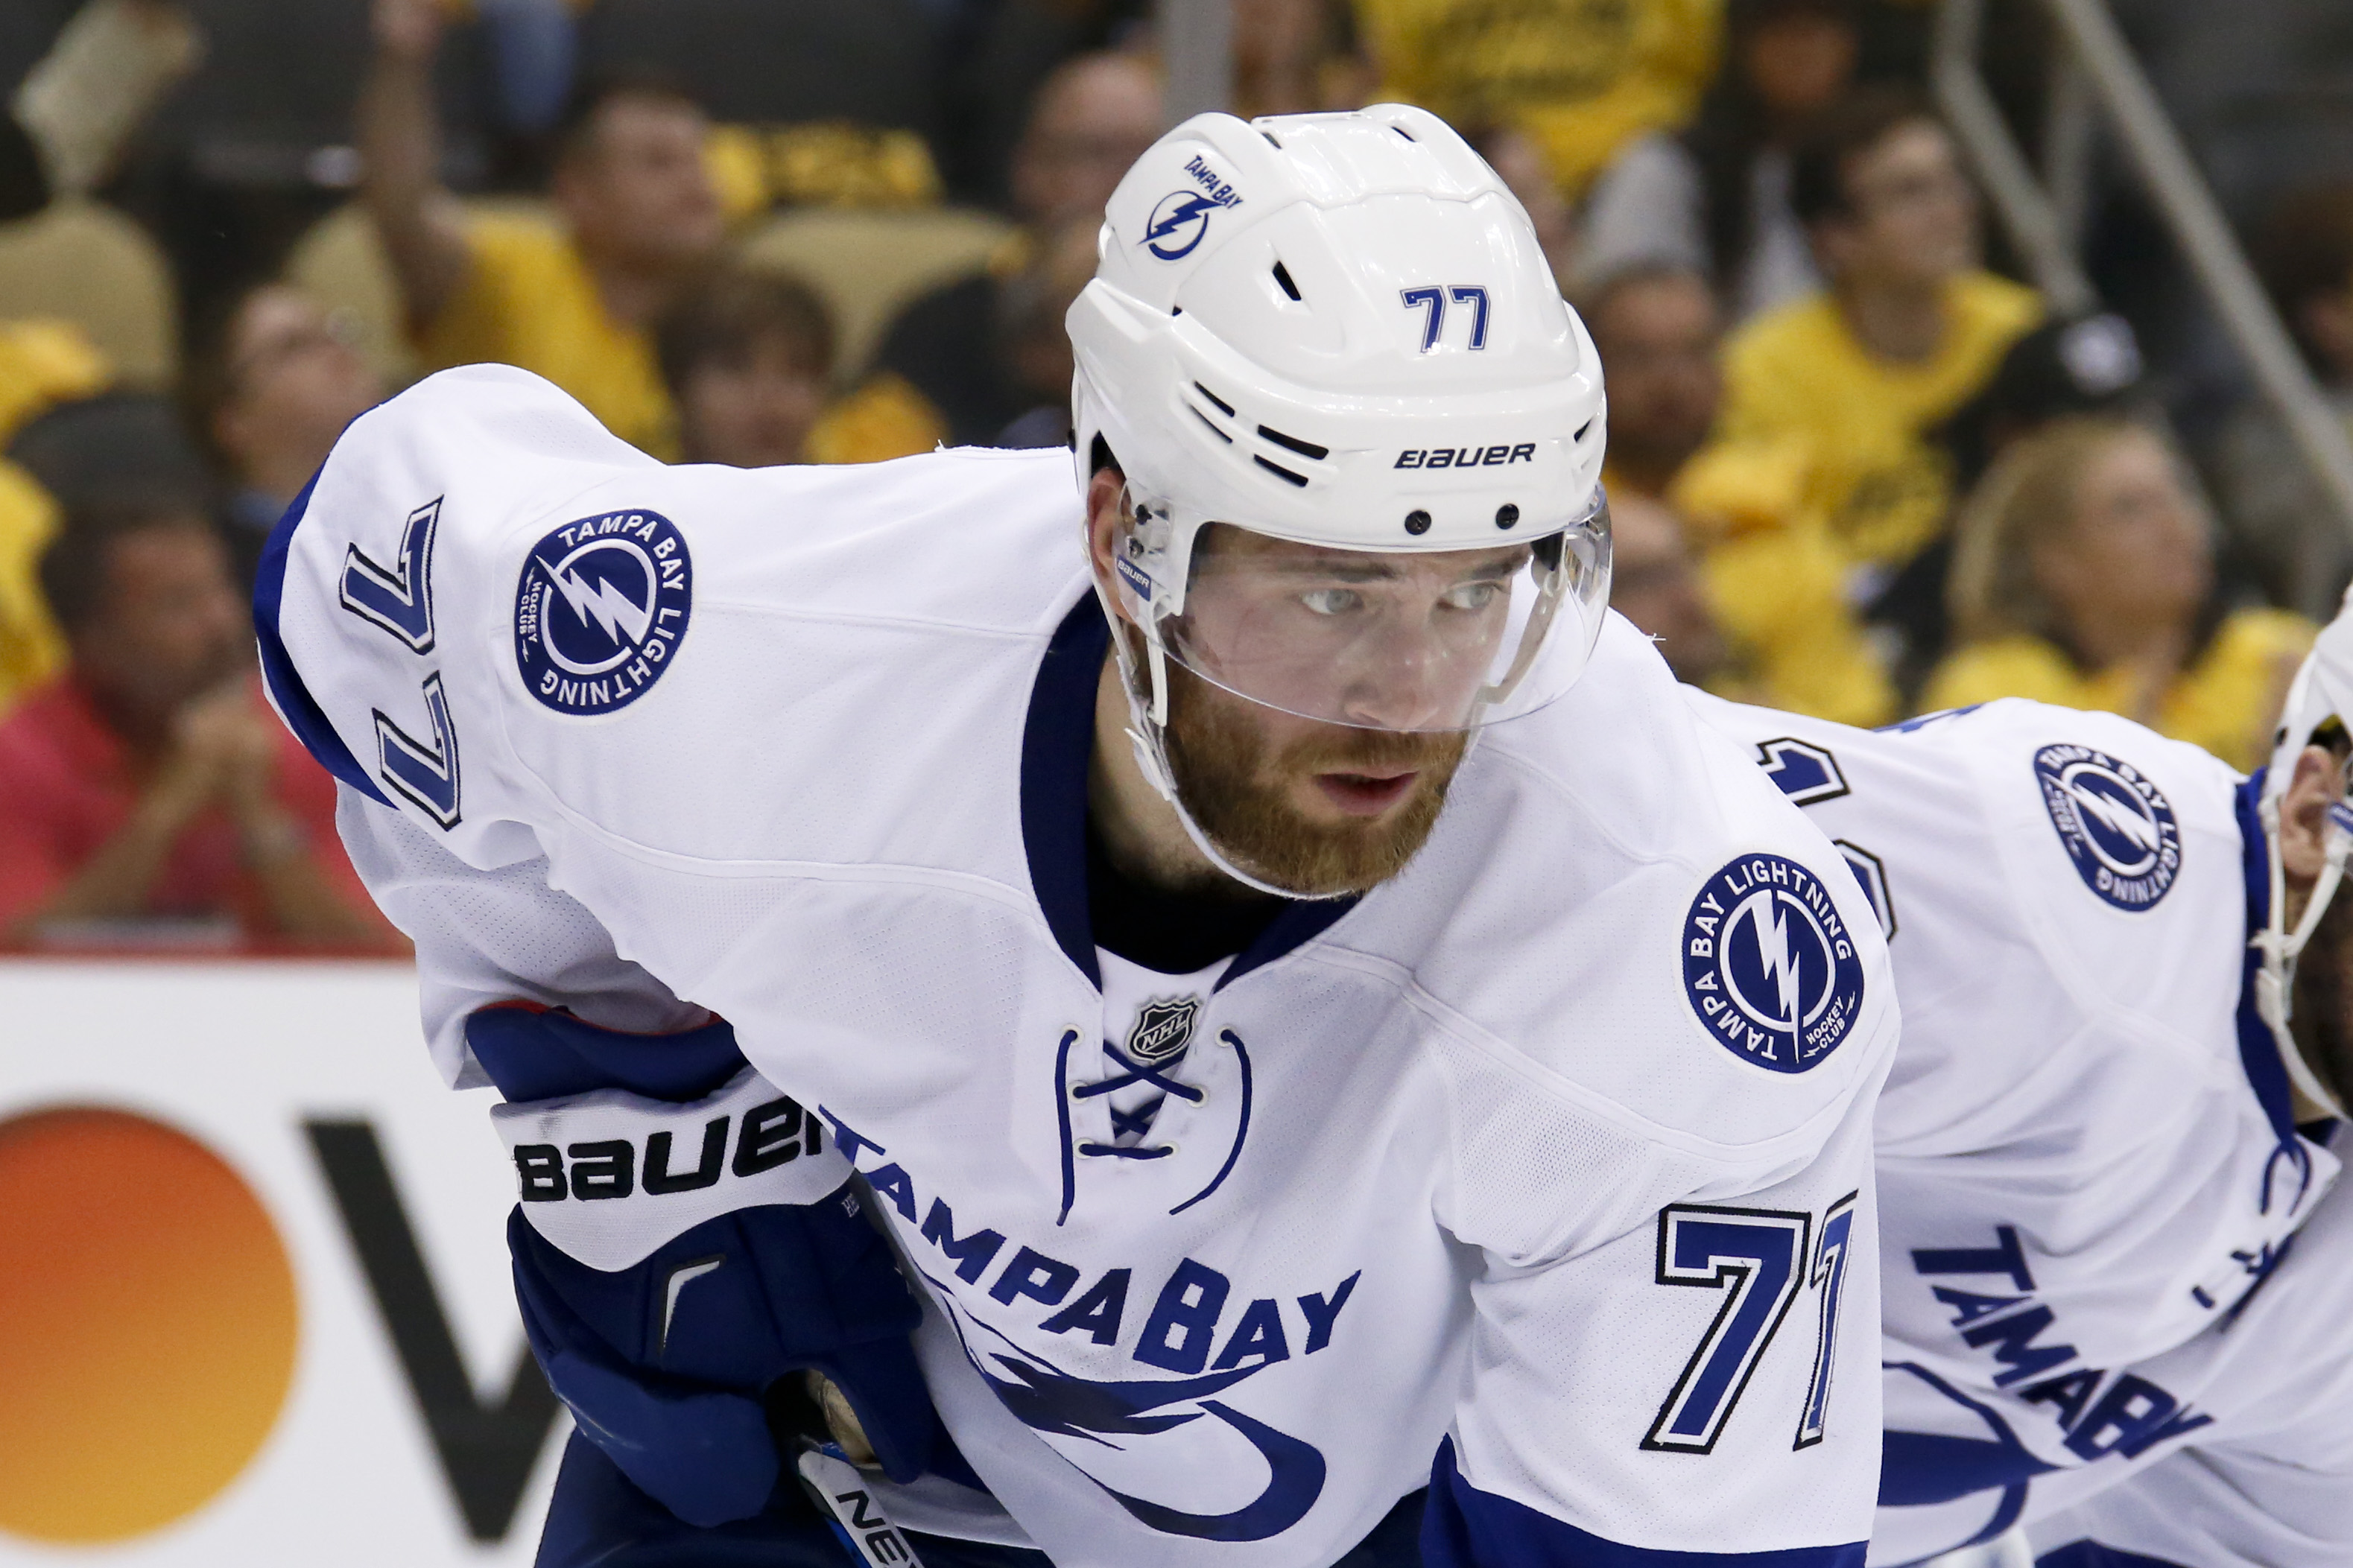 Tampa Bay Lightning's Victor Hedman (77) plays against the Pittsburgh Penguins during the second period of Game 7 of the NHL hockey Stanley Cup Eastern Conference finals, Thursday, May 26, 2016, in Pittsburgh. (AP Photo/Gene J. Puskar)